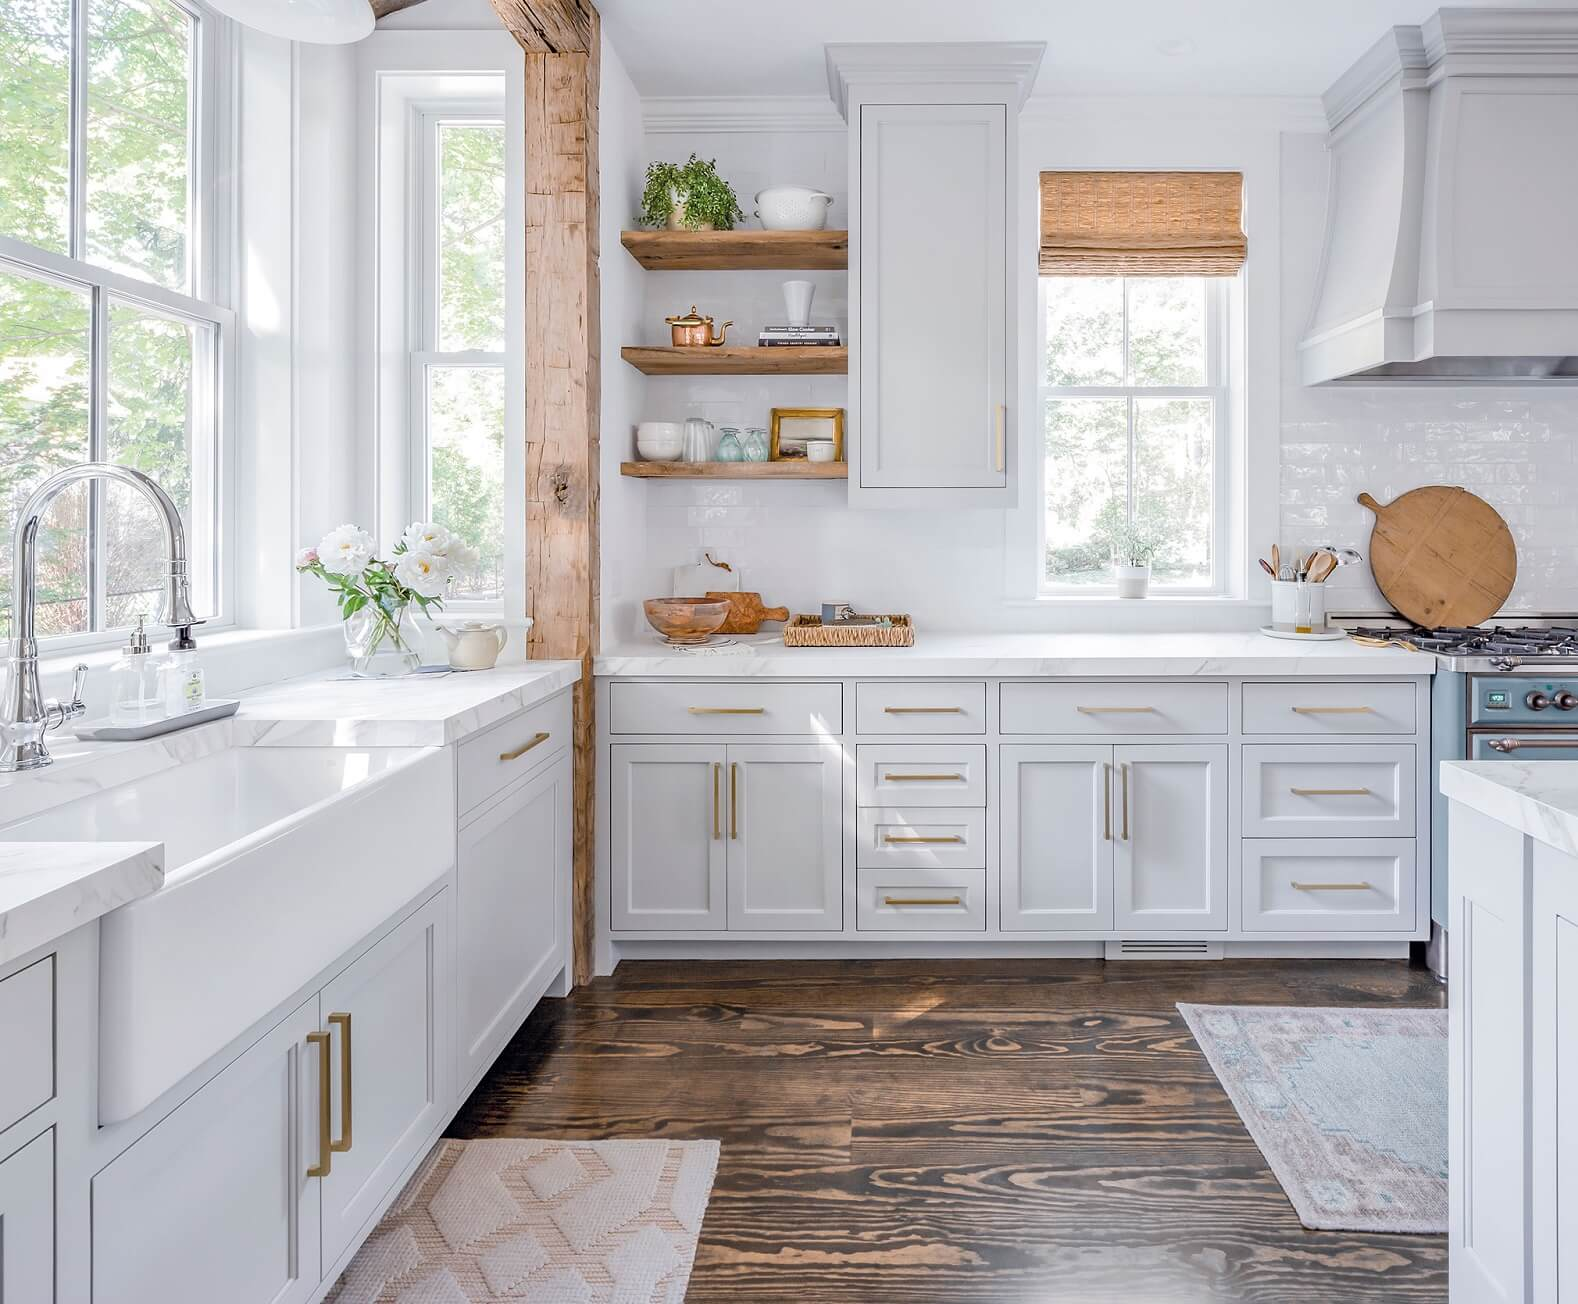 Surprising Best Coastal Kitchens Beach Decor Ideas For 2019 Home Interior And Landscaping Oversignezvosmurscom